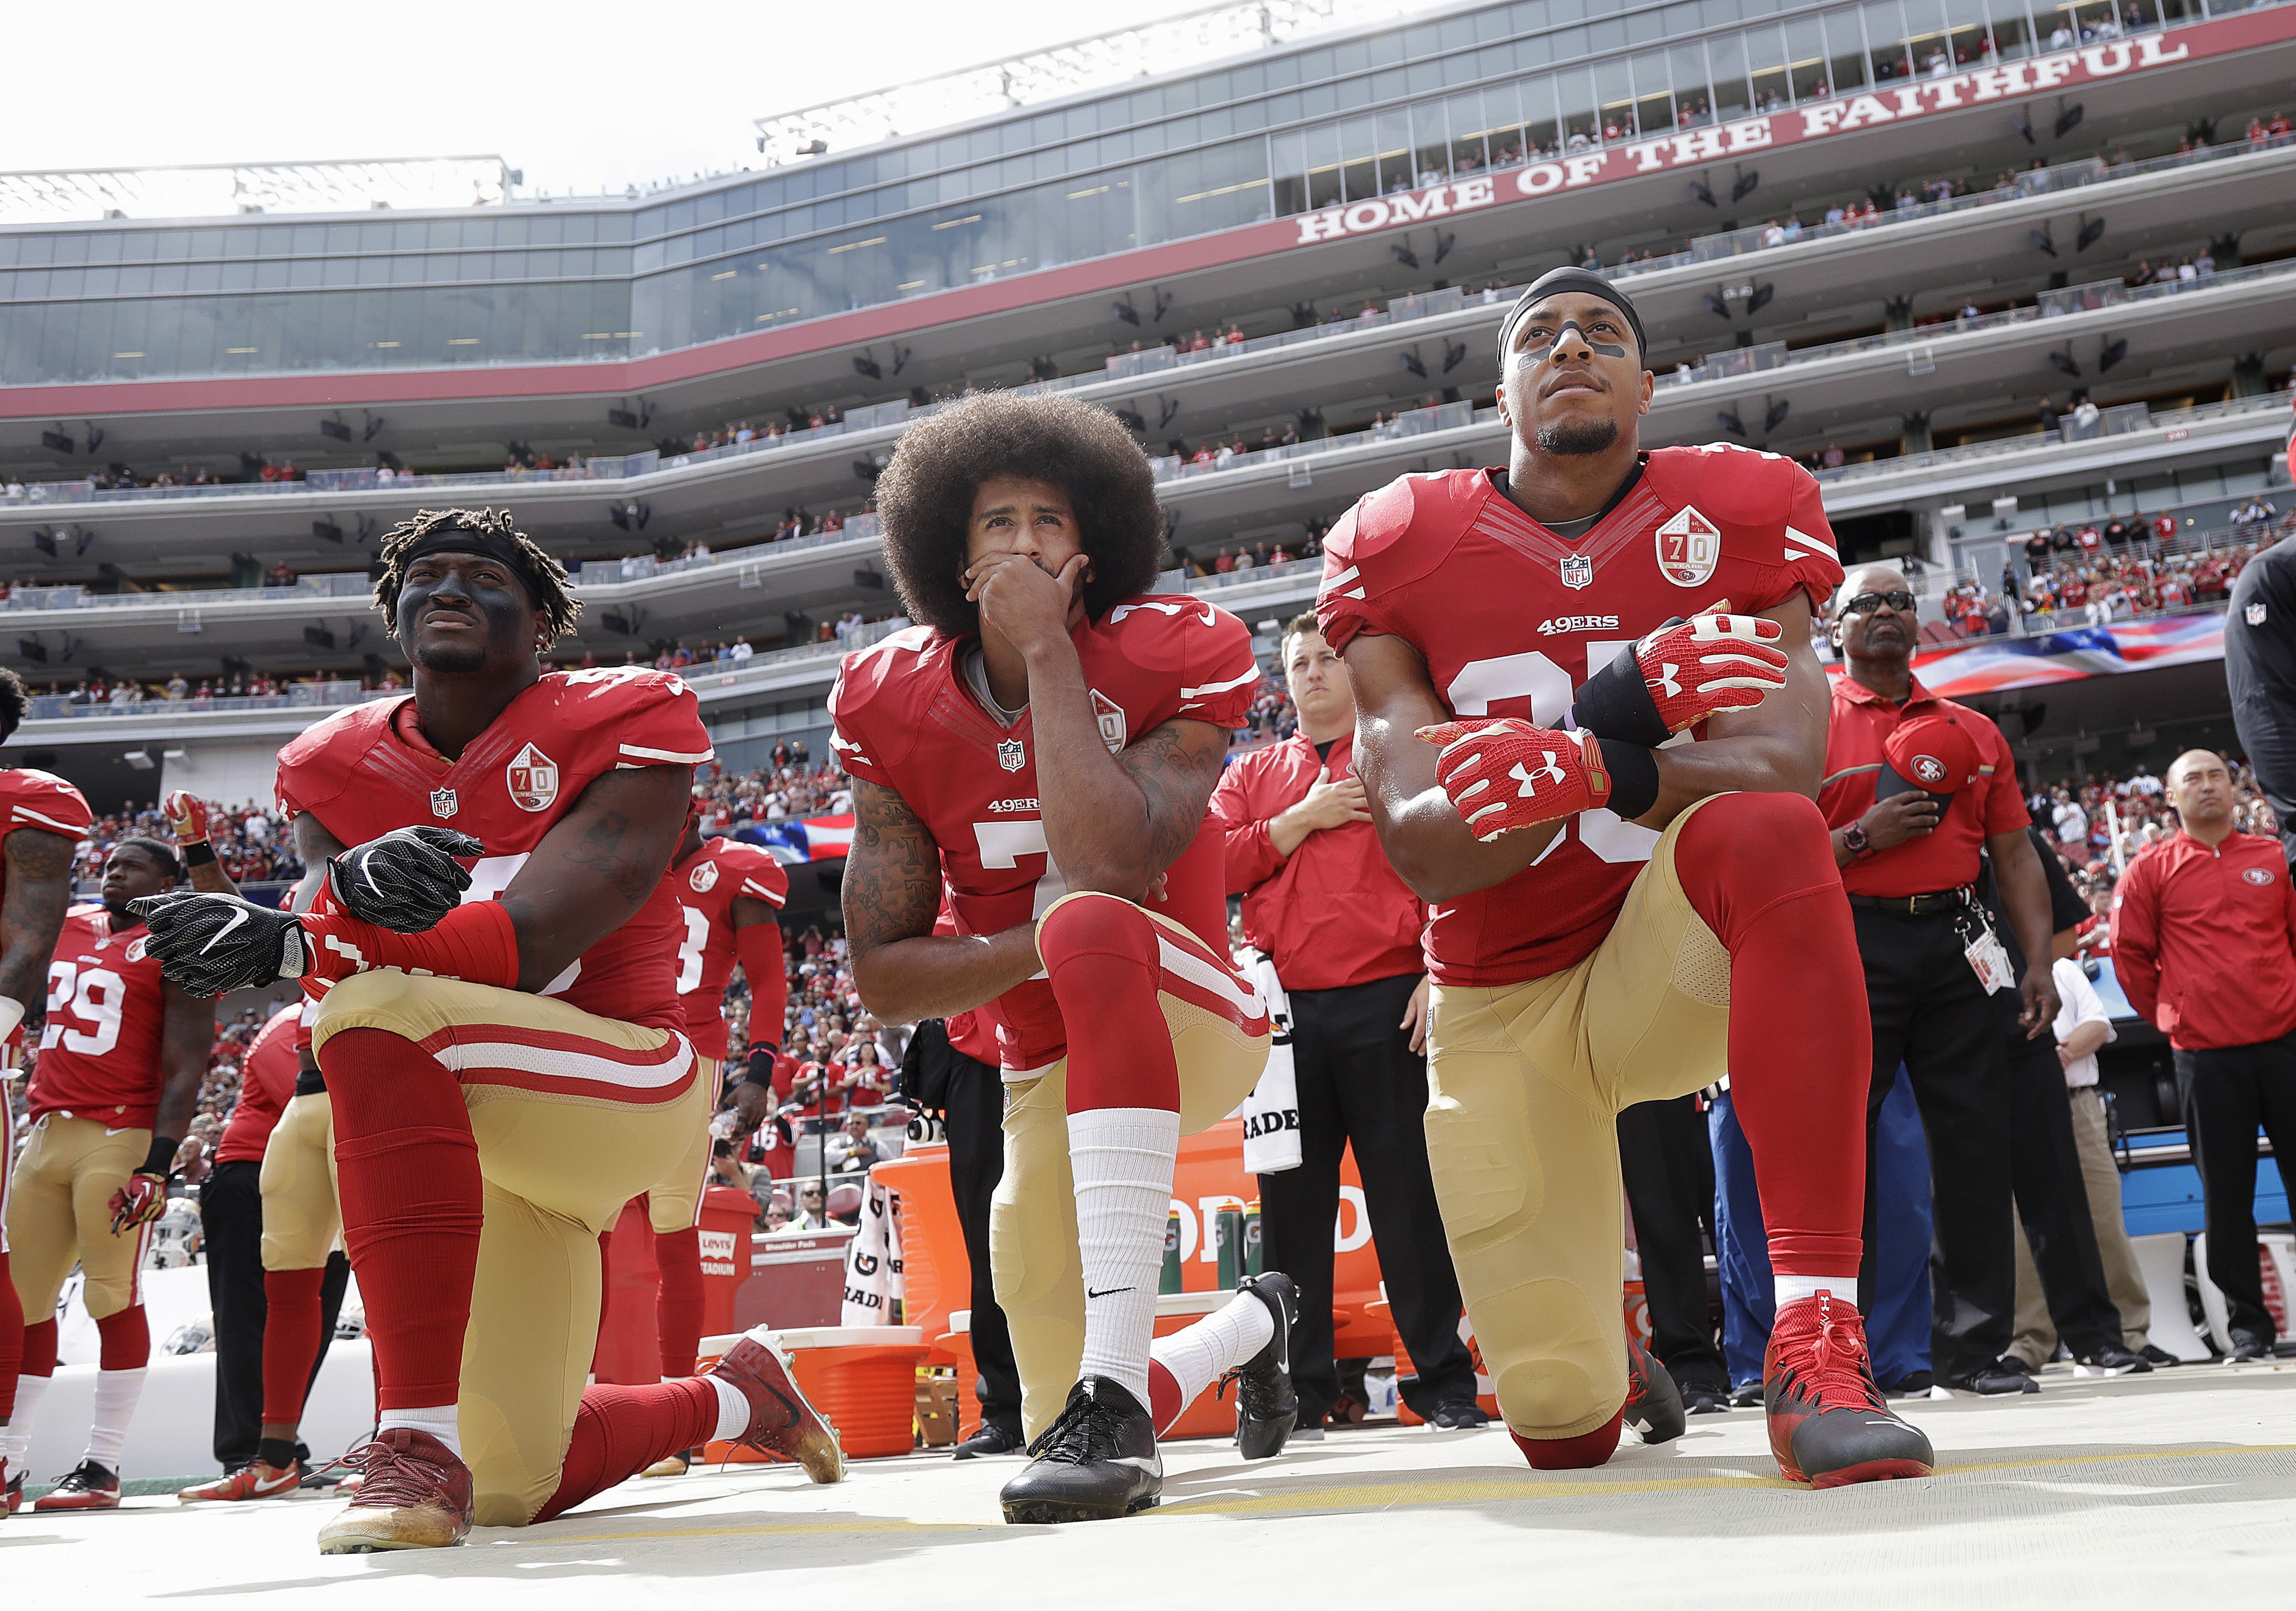 Colin Kaepernick, center, kneels with two teammates during the national anthem before the San Francisco 49ers played the Dallas Cowboys on Oct. 2, 2016.